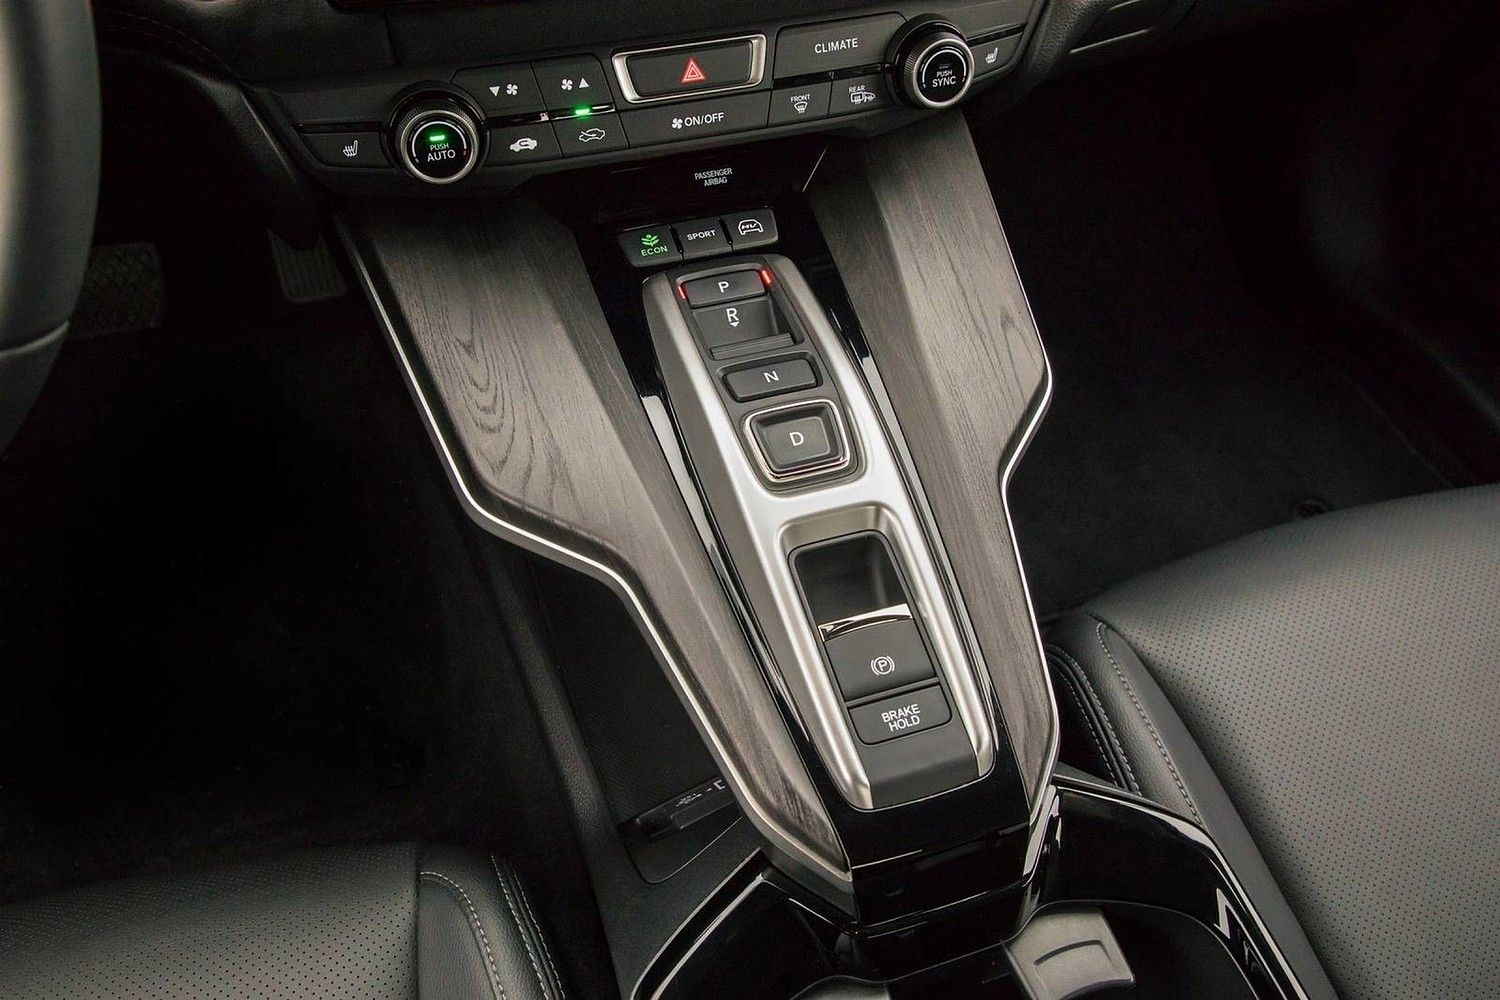 2018 Honda Clarity Touring Plug-In Hybrid Sedan Shifter